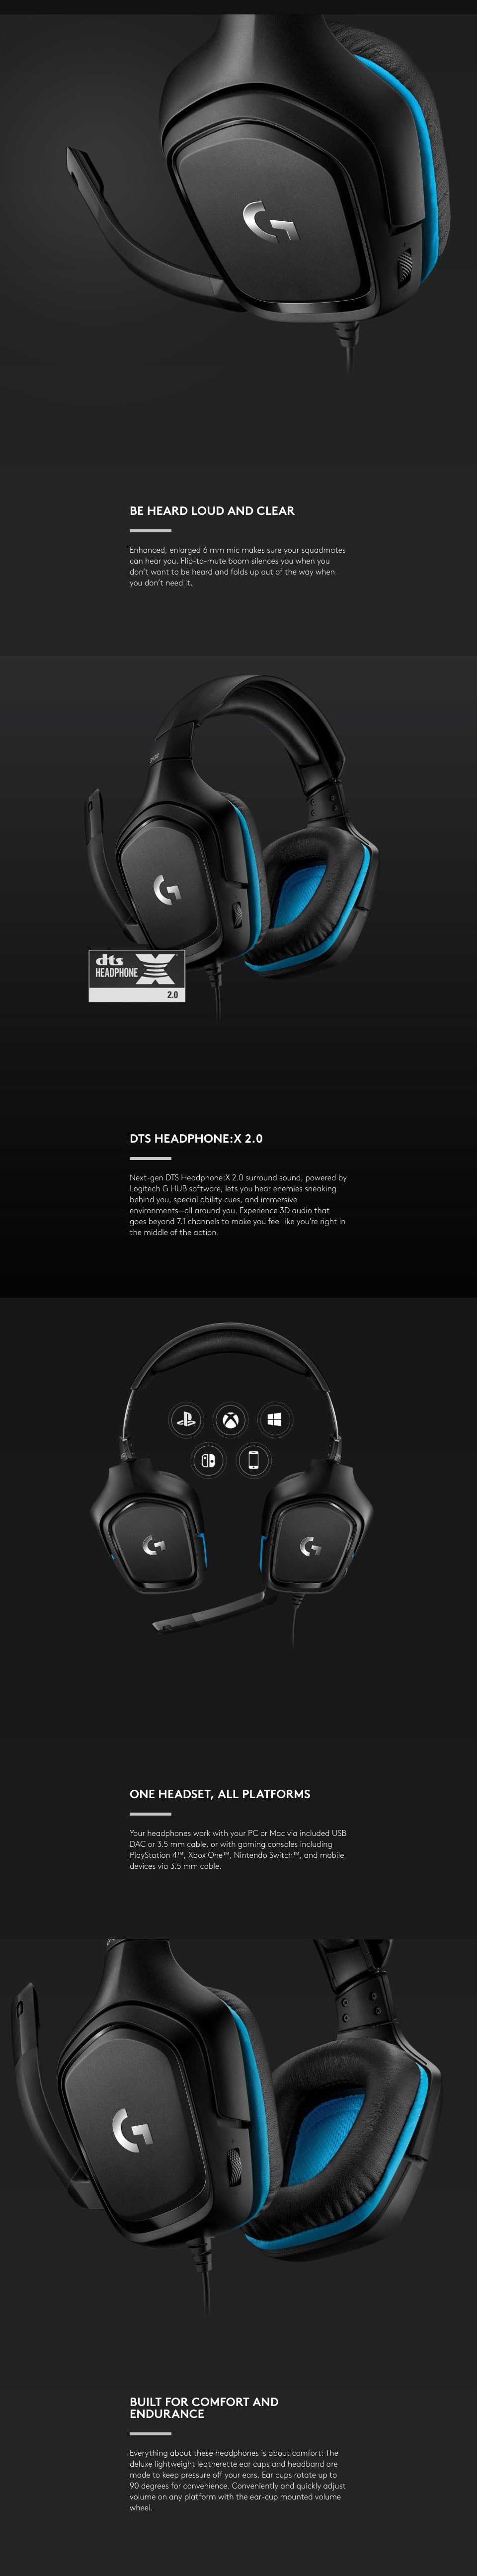 Logitech G432 7 1 Gaming Headset